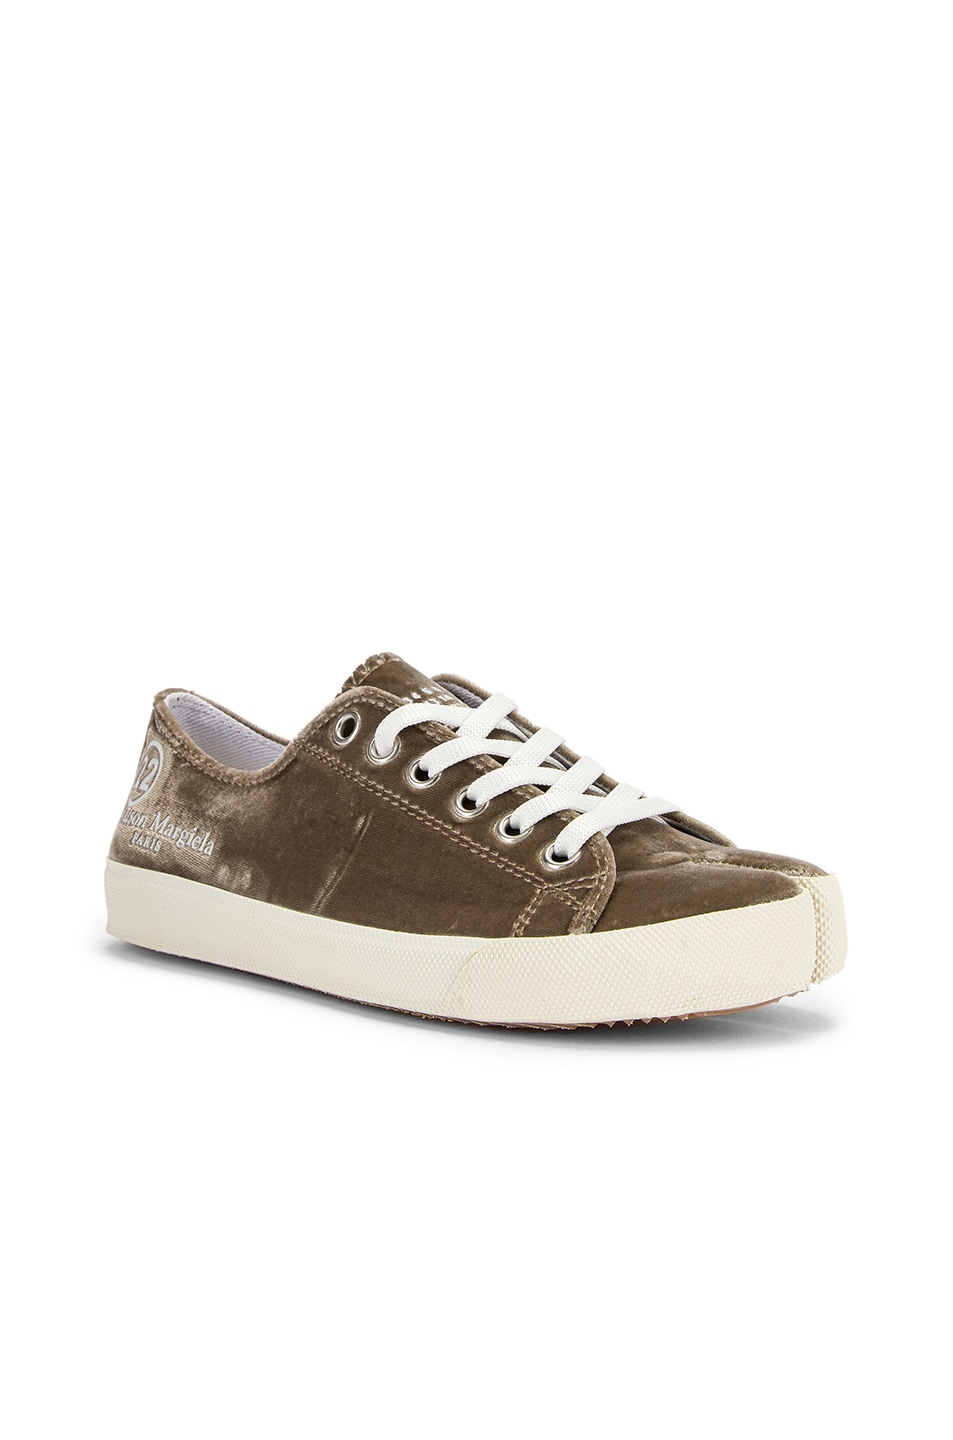 Image 3 of Maison Margiela Toe Lace Up Sneakers in Champagne Beige